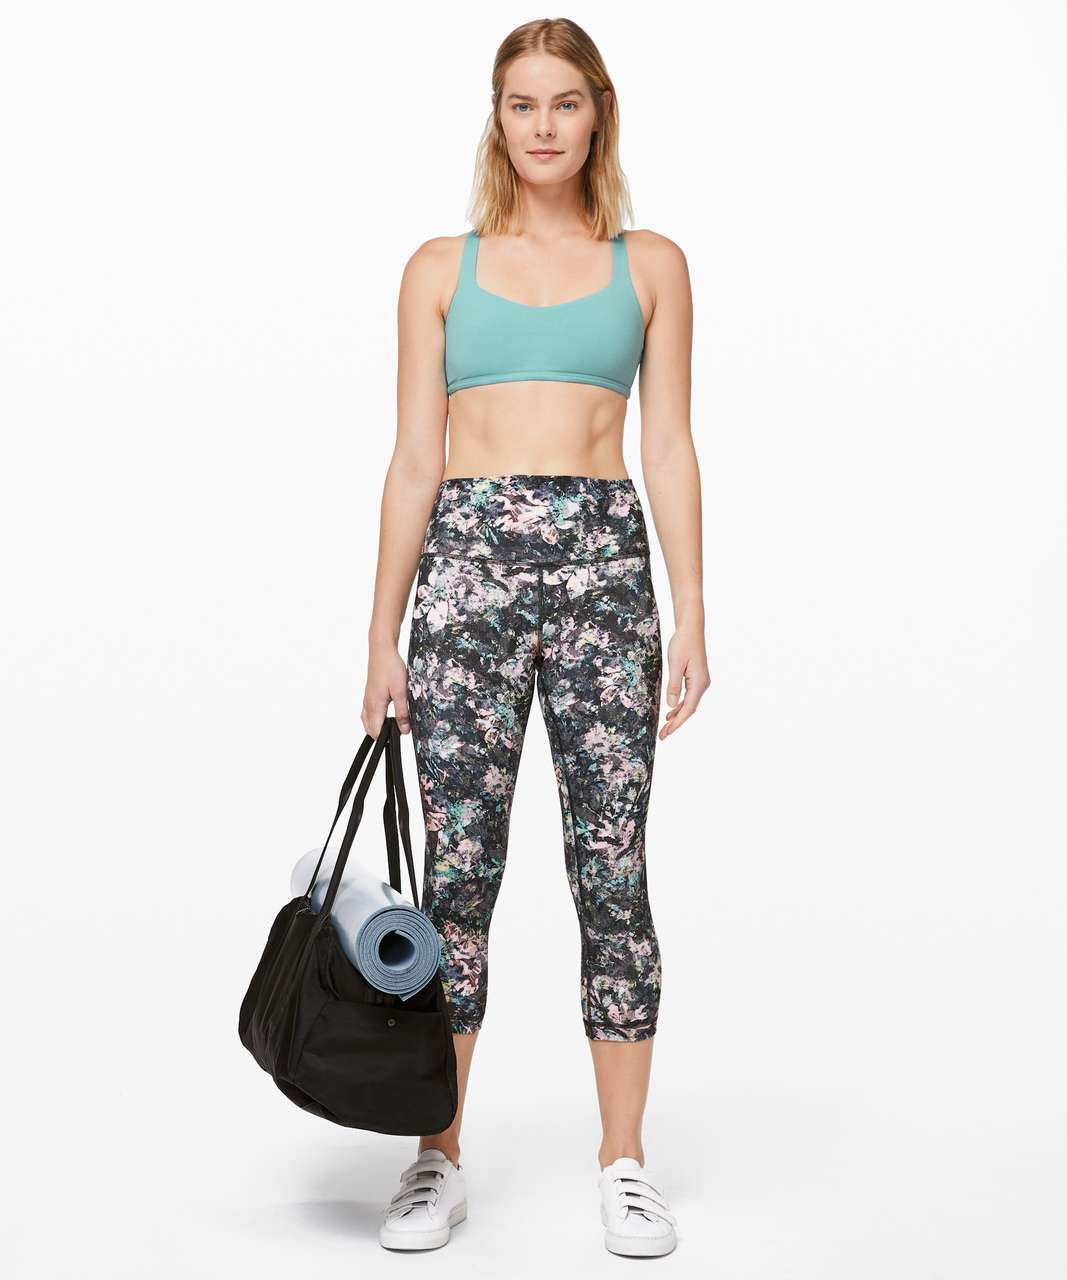 Lululemon Free To Be Bra (Wild) - Tidal Teal